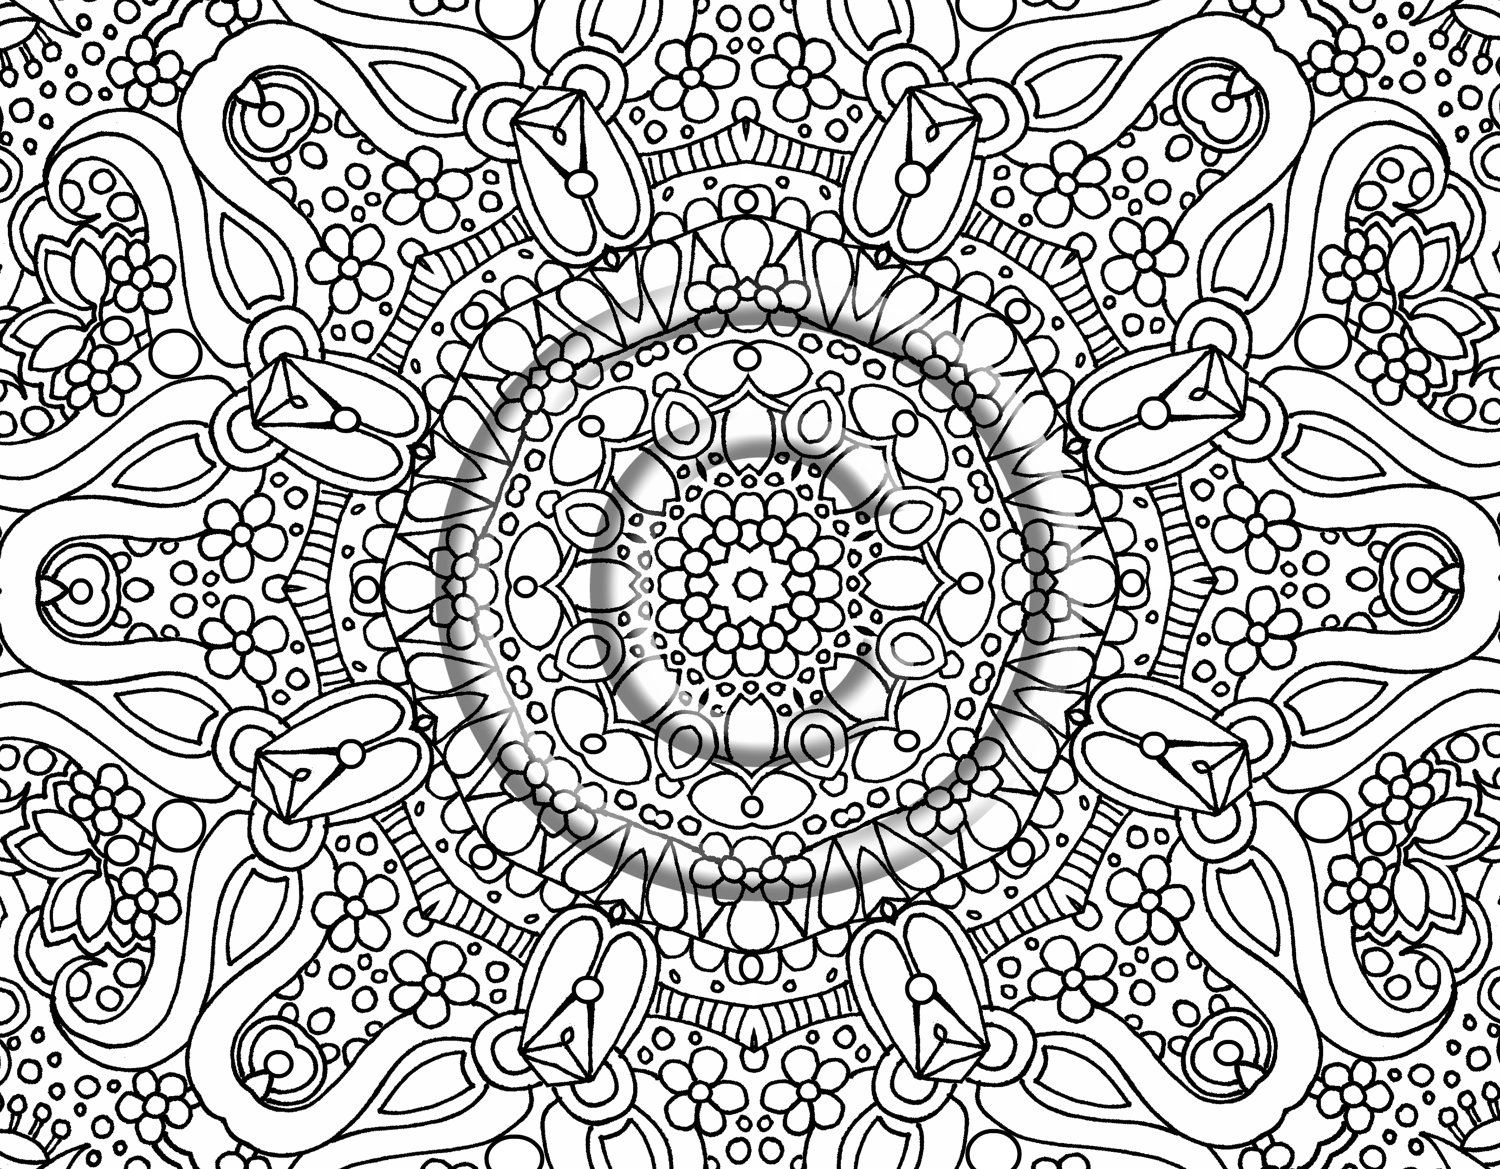 Free Printable Abstract Coloring Pages For Adults Difficult Coloring Pages